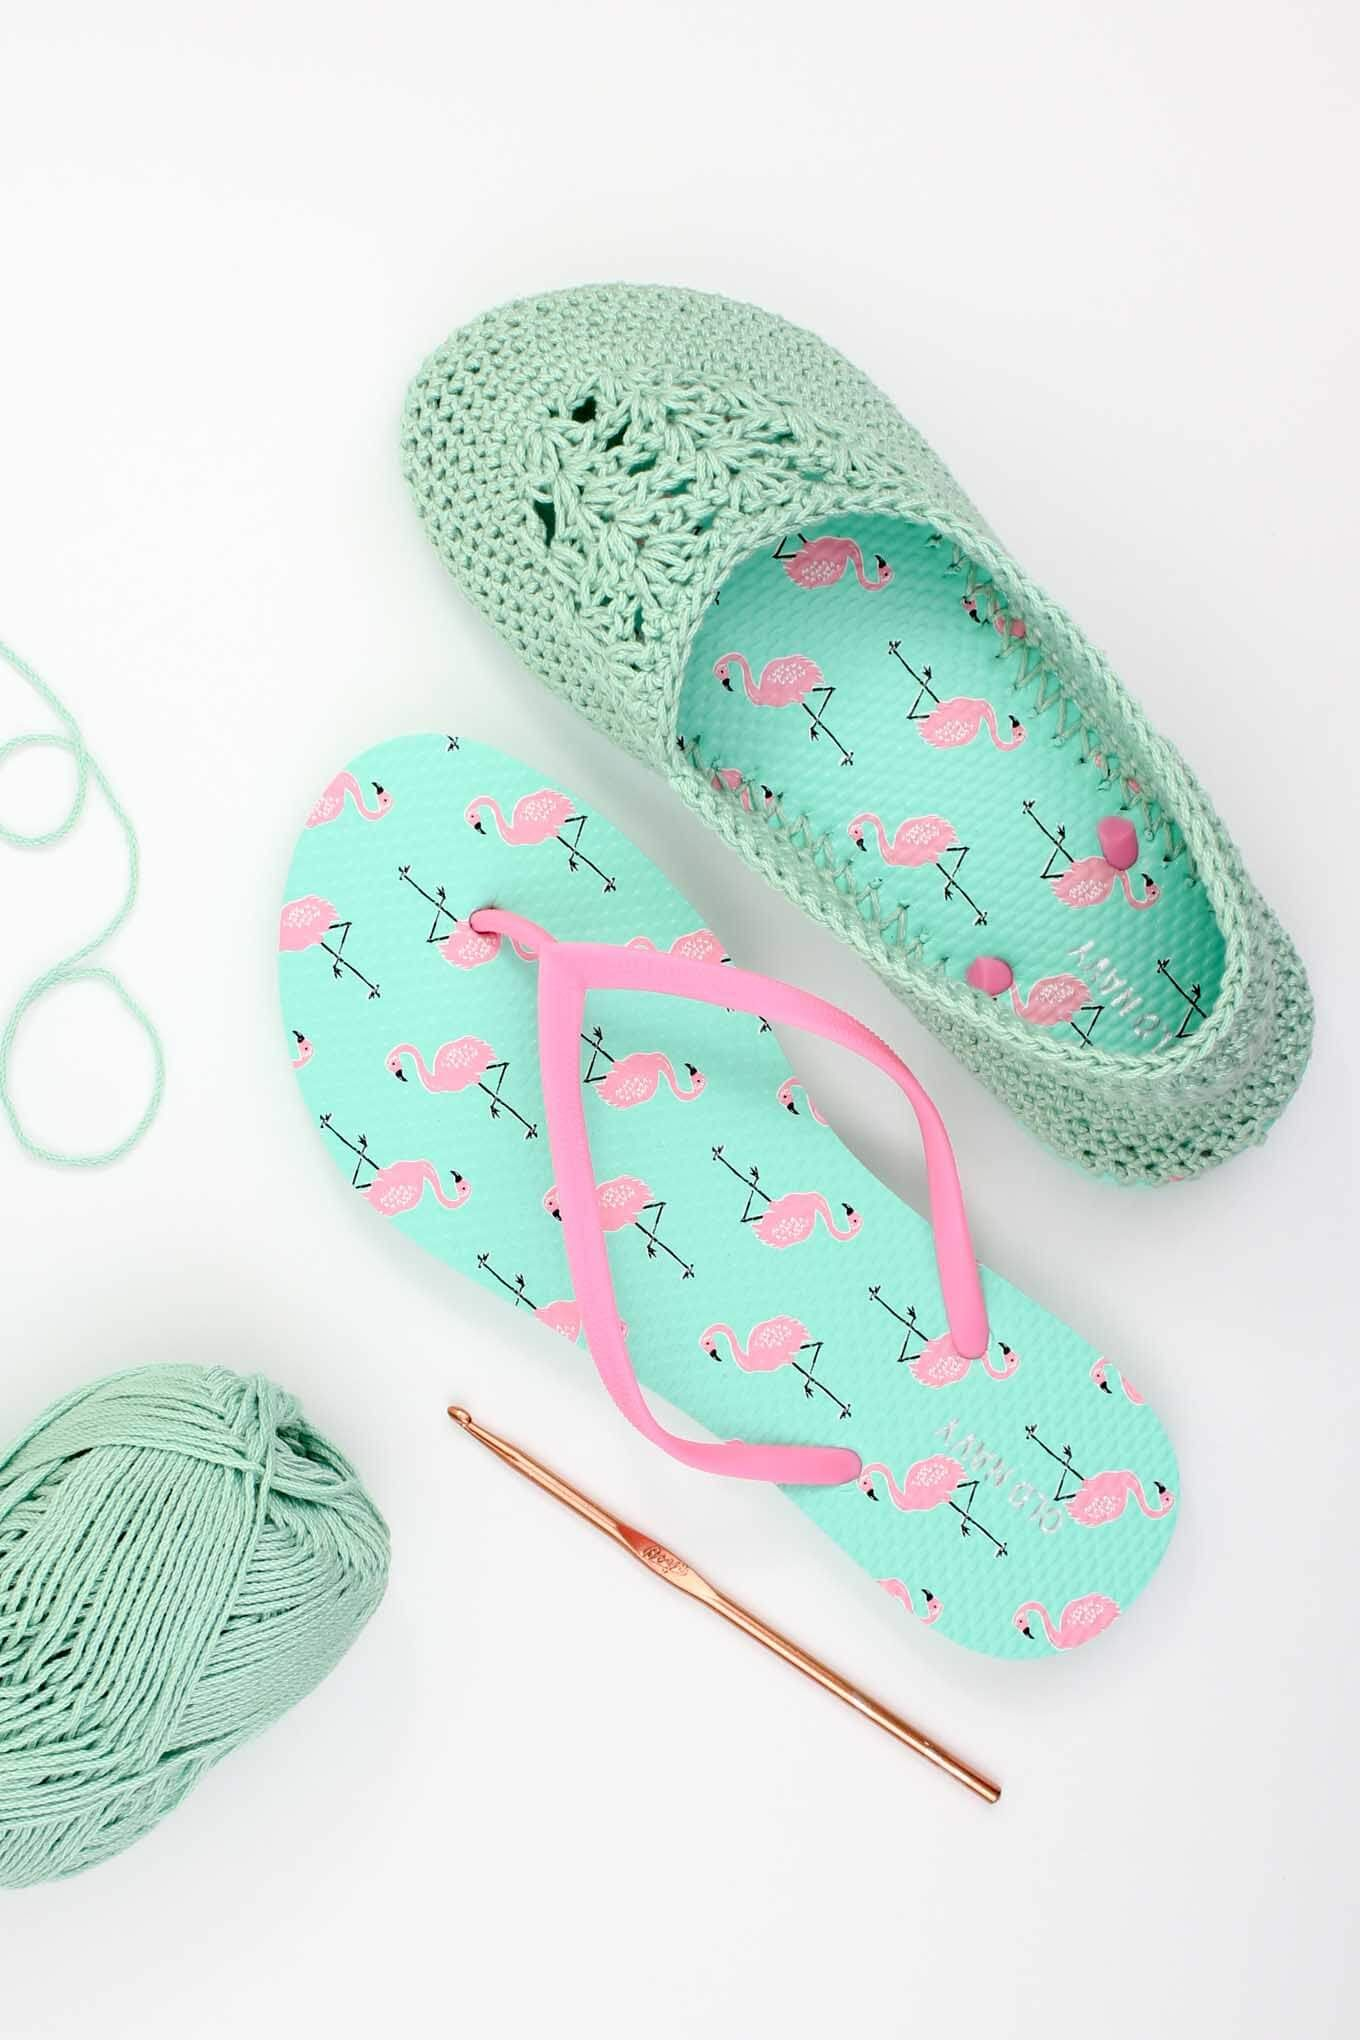 e58064879a3 Make warm weather crochet slippers with a cheap pair of flip flops in this free  pattern and video tutorial.